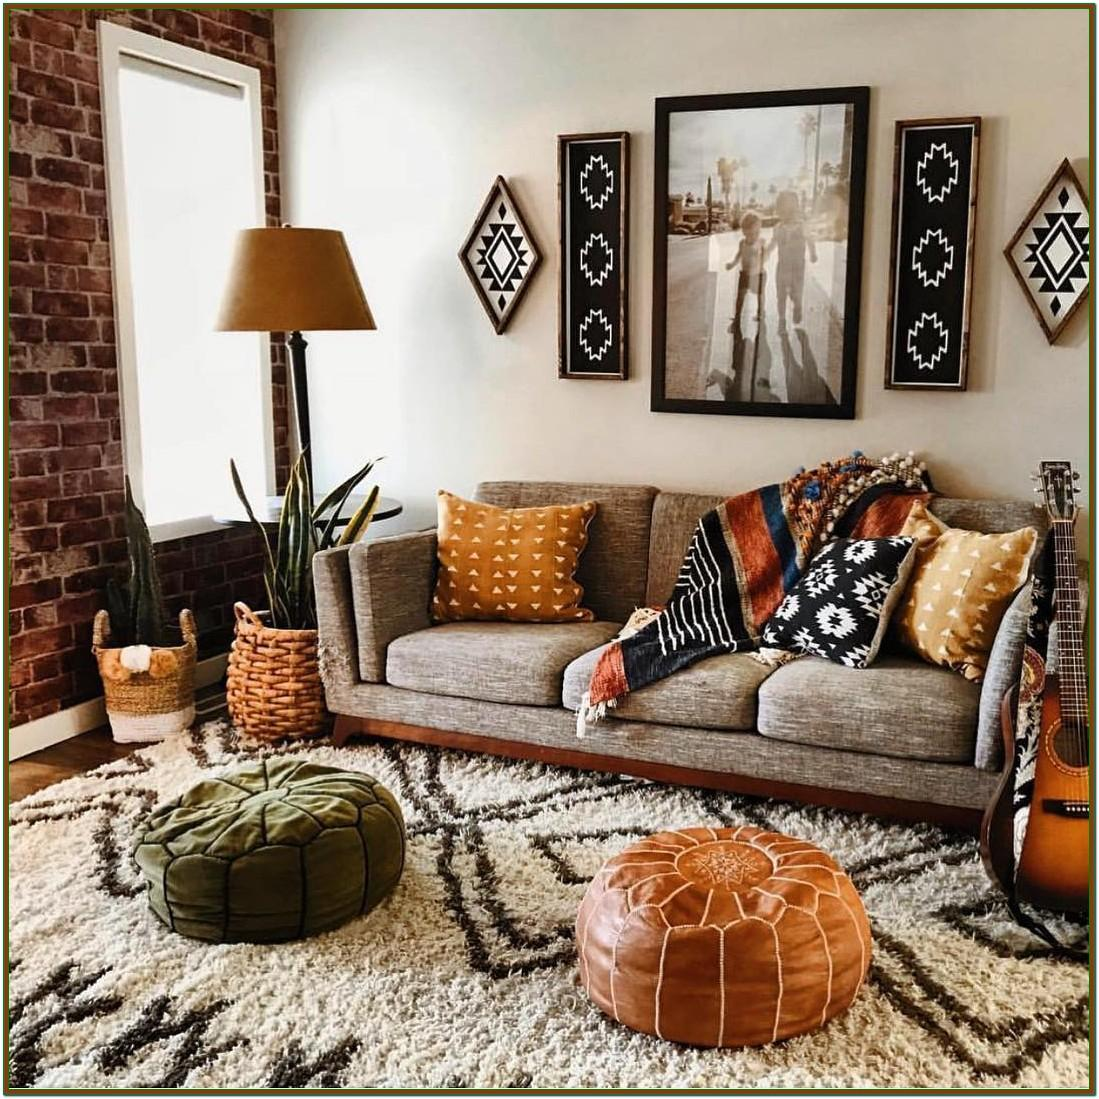 Living Room Small Space Wall Decorations